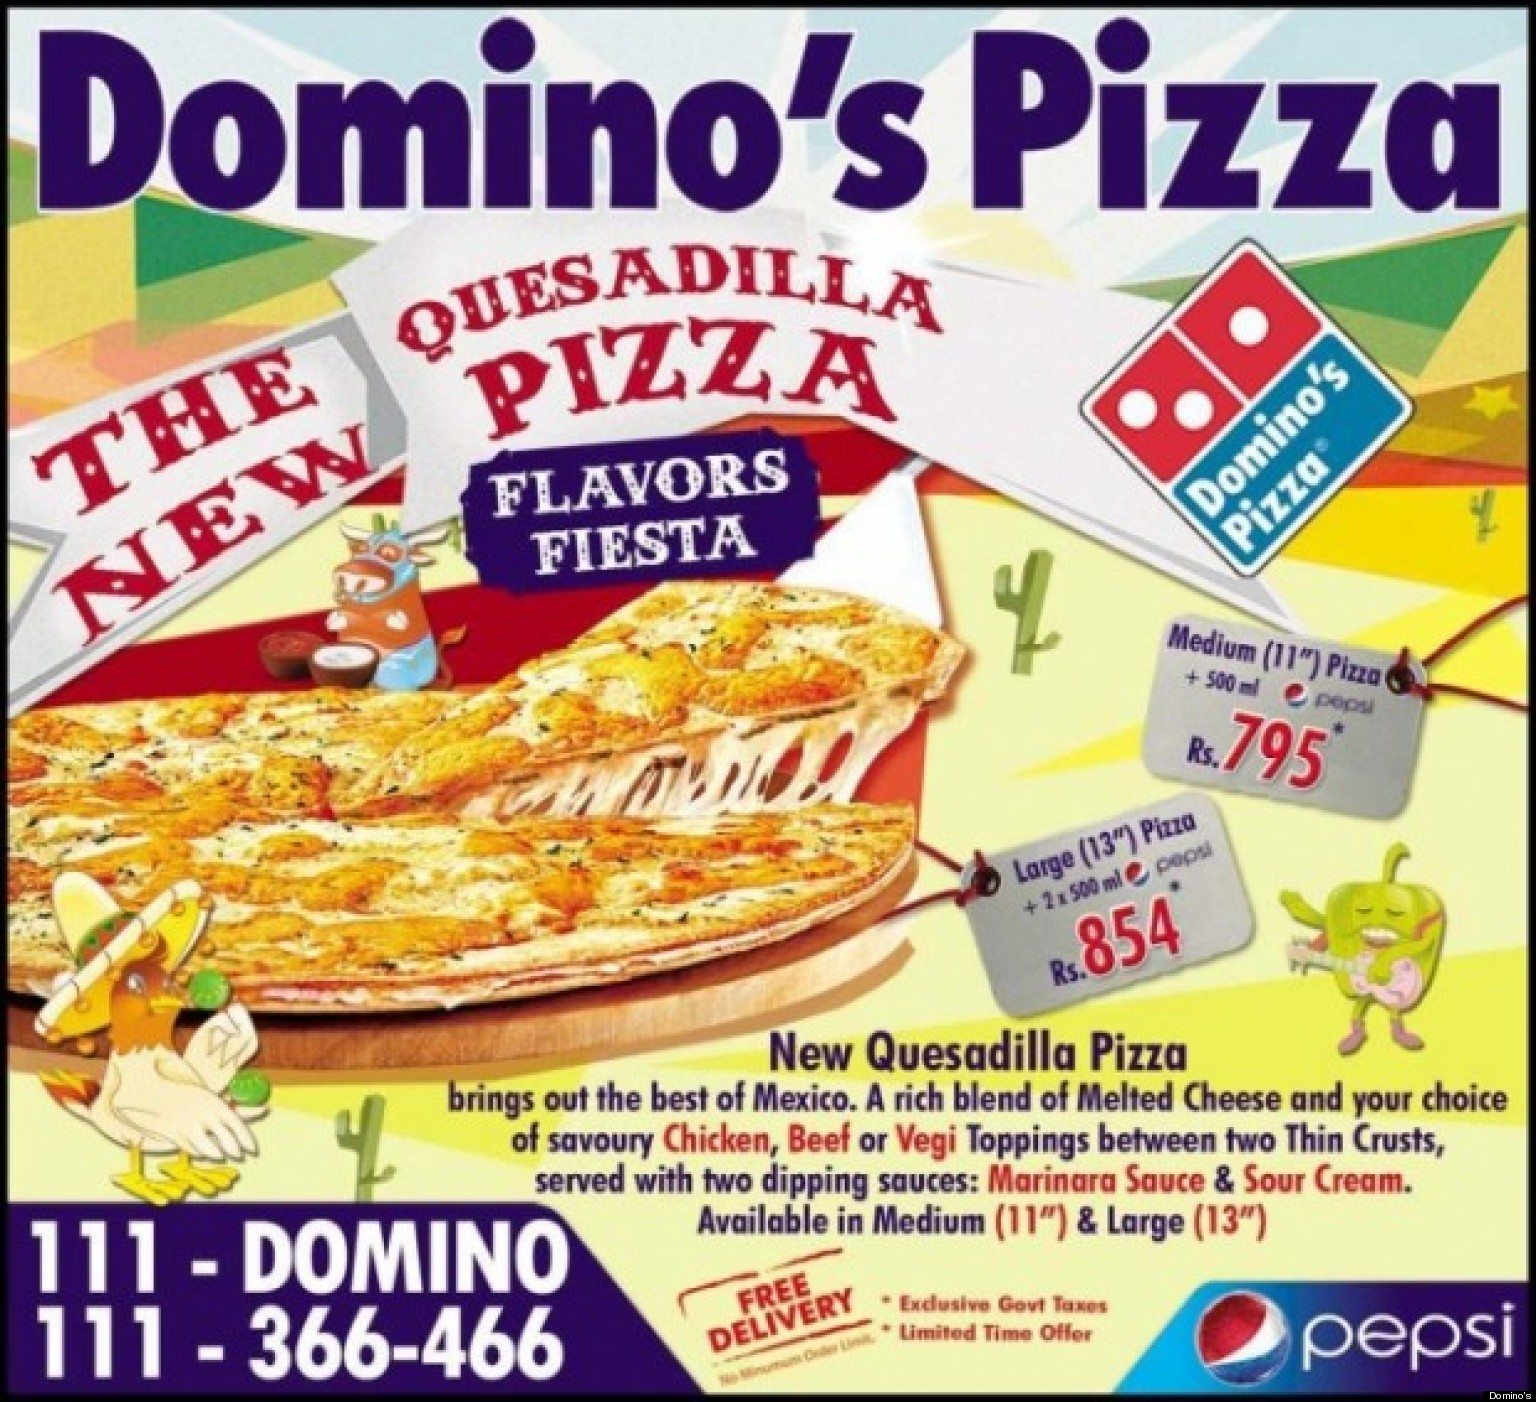 domino pizza 2013 10k Domino's pizza, inc has had negative equity for quite some time and is now  ( according to the domino's 10k, long-term debt and capital lease obligations of   just $165 million in 2014 and a loss of $404 million in 2013.